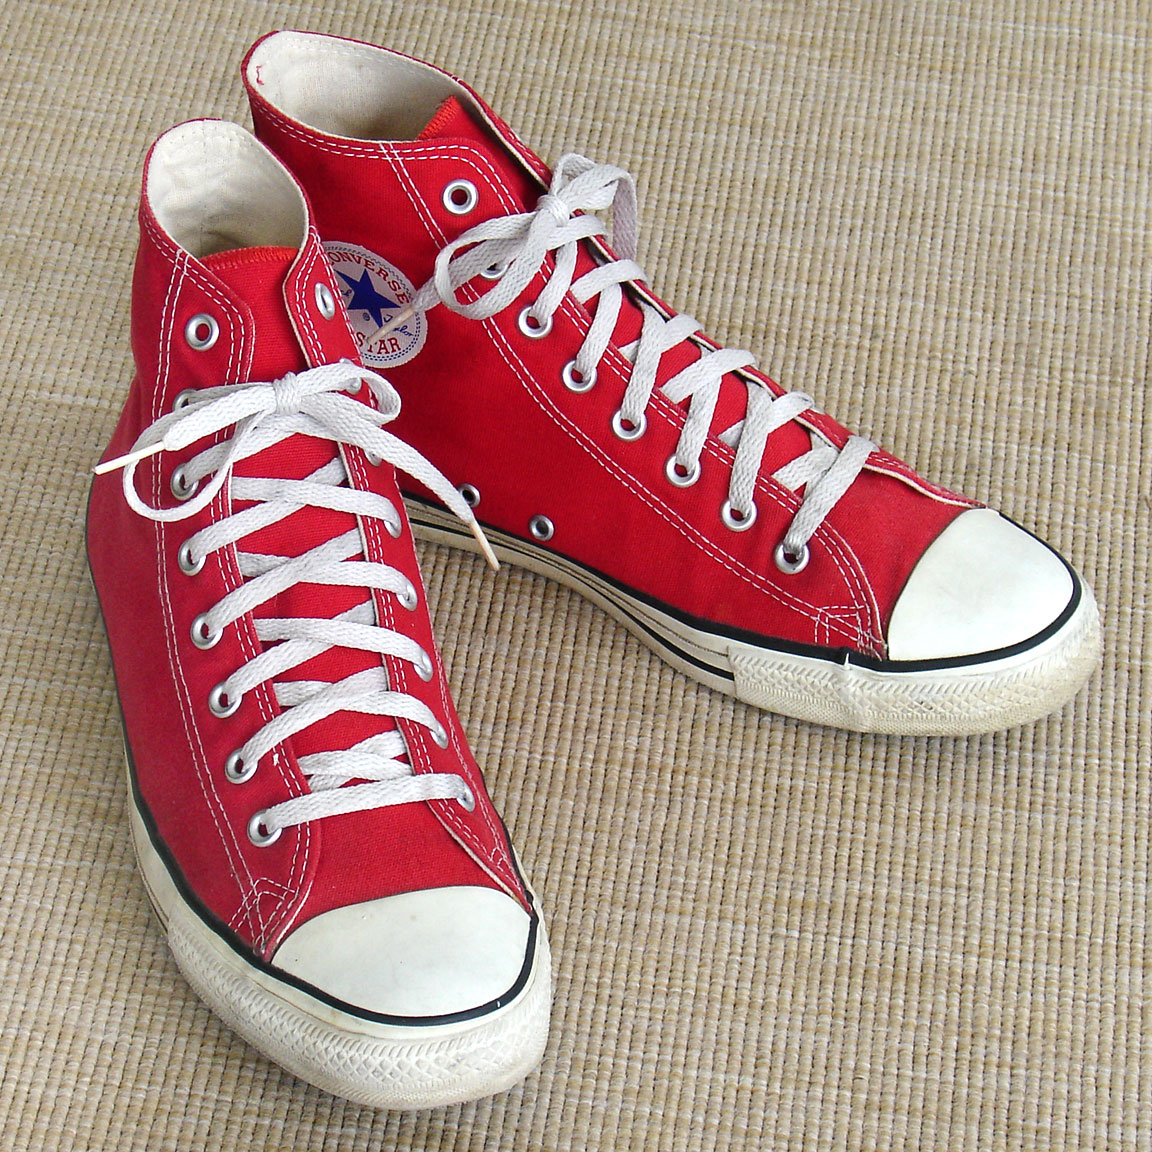 d31445070579 Vintage red hi-top American-made Converse All Star Chuck Taylor shoes for  sale